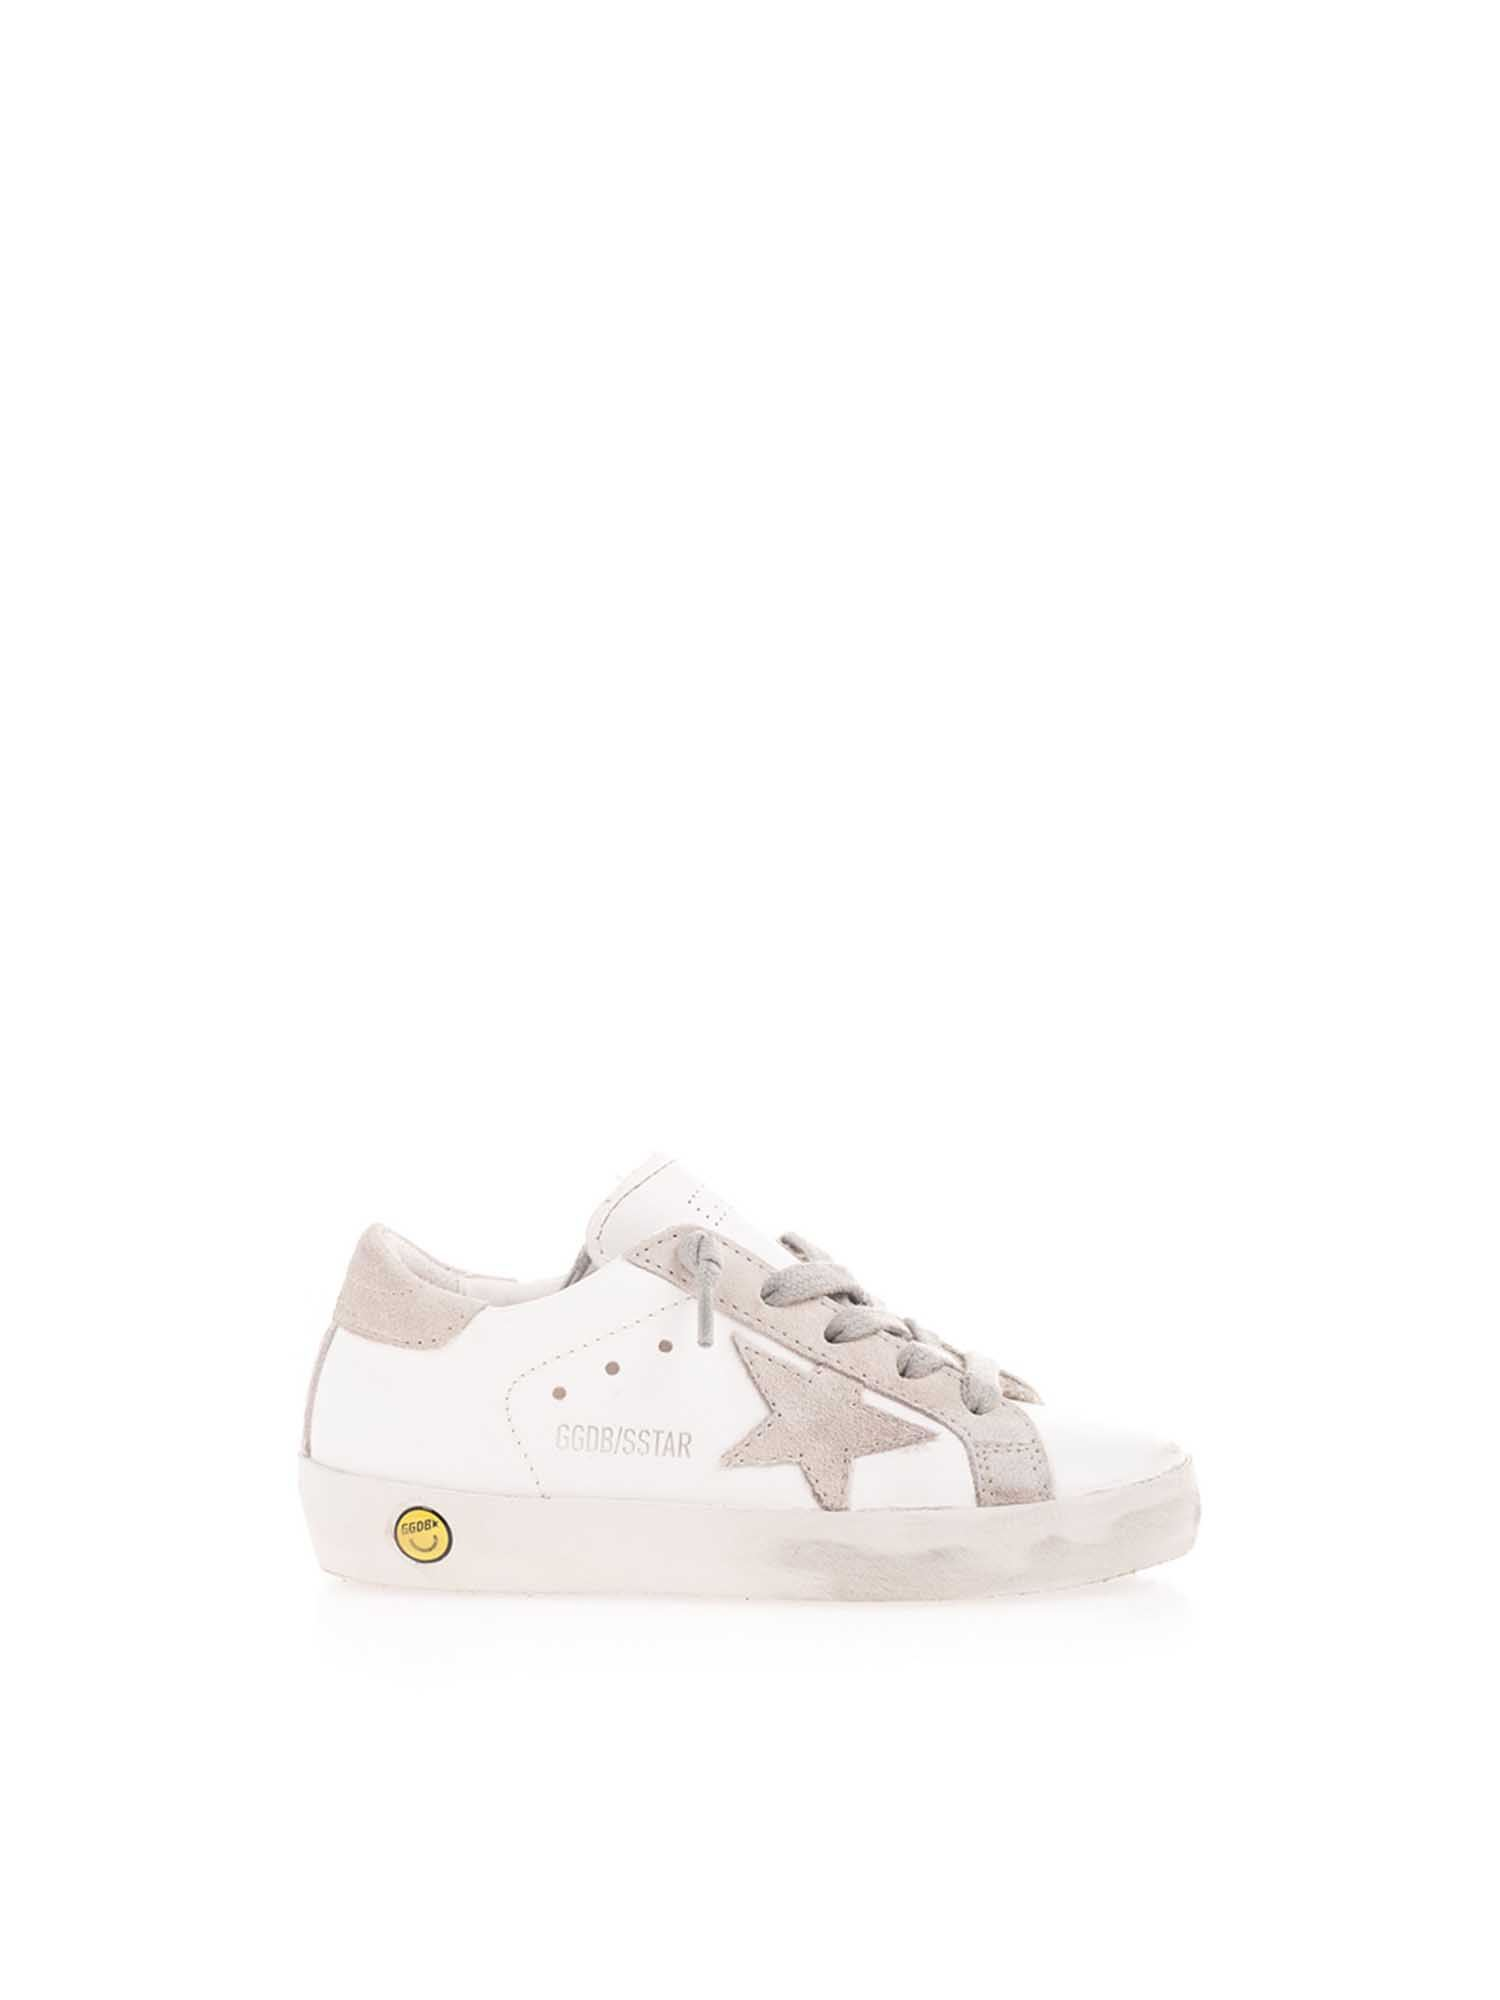 Golden Goose SUPER STAR SNEAKERS IN WHITE AND ECRU